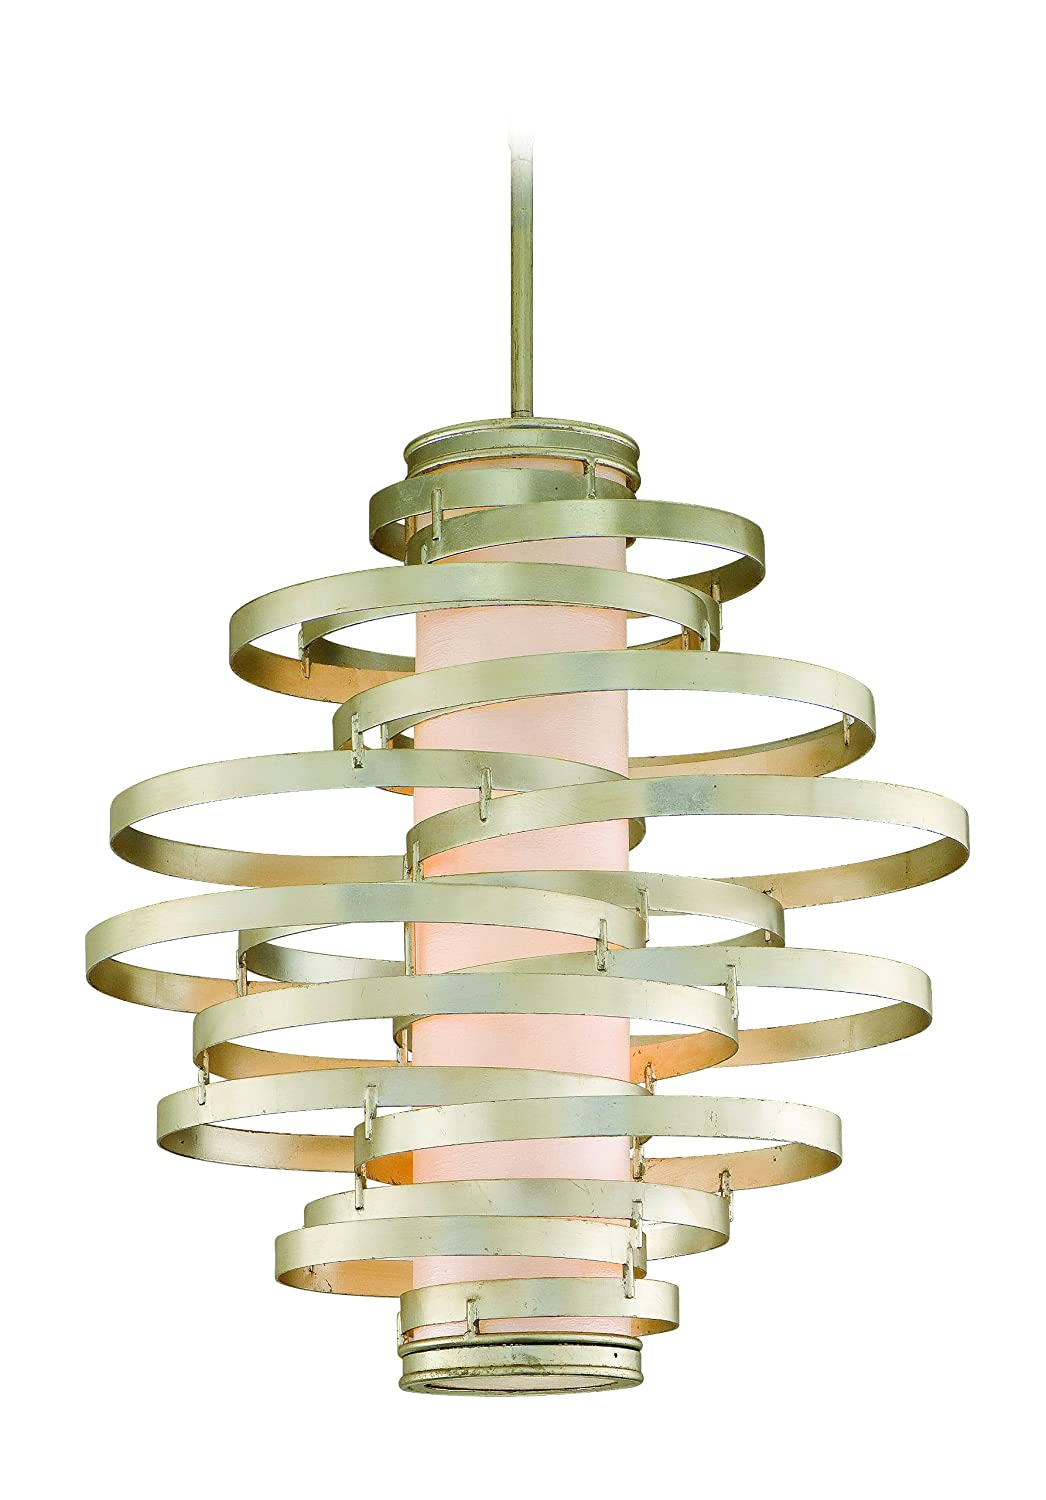 the best light com lights of pendant divineducation home fresh corbett awesome lighting medium vertigo